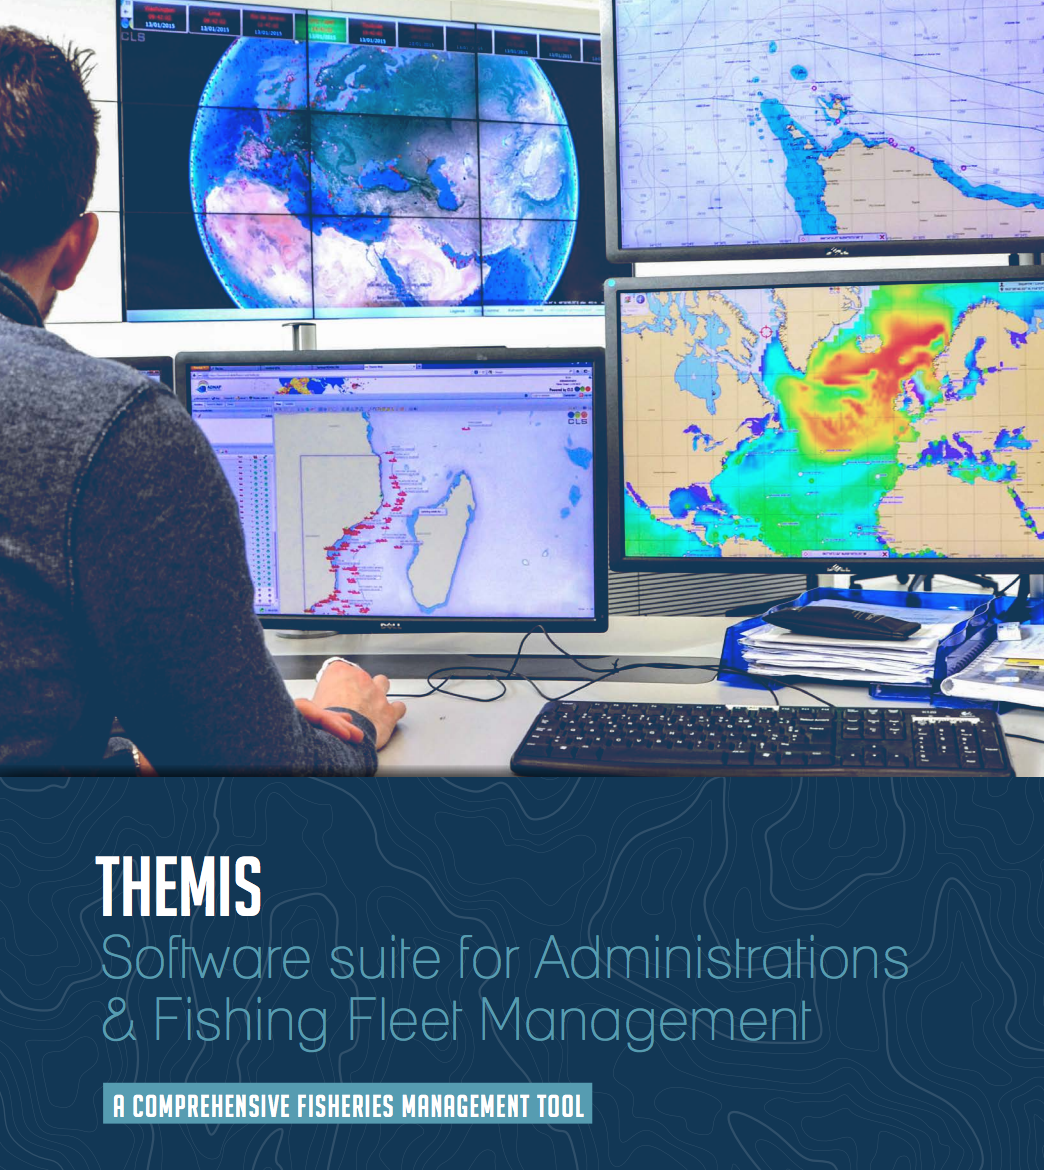 Themis FMC for administrations